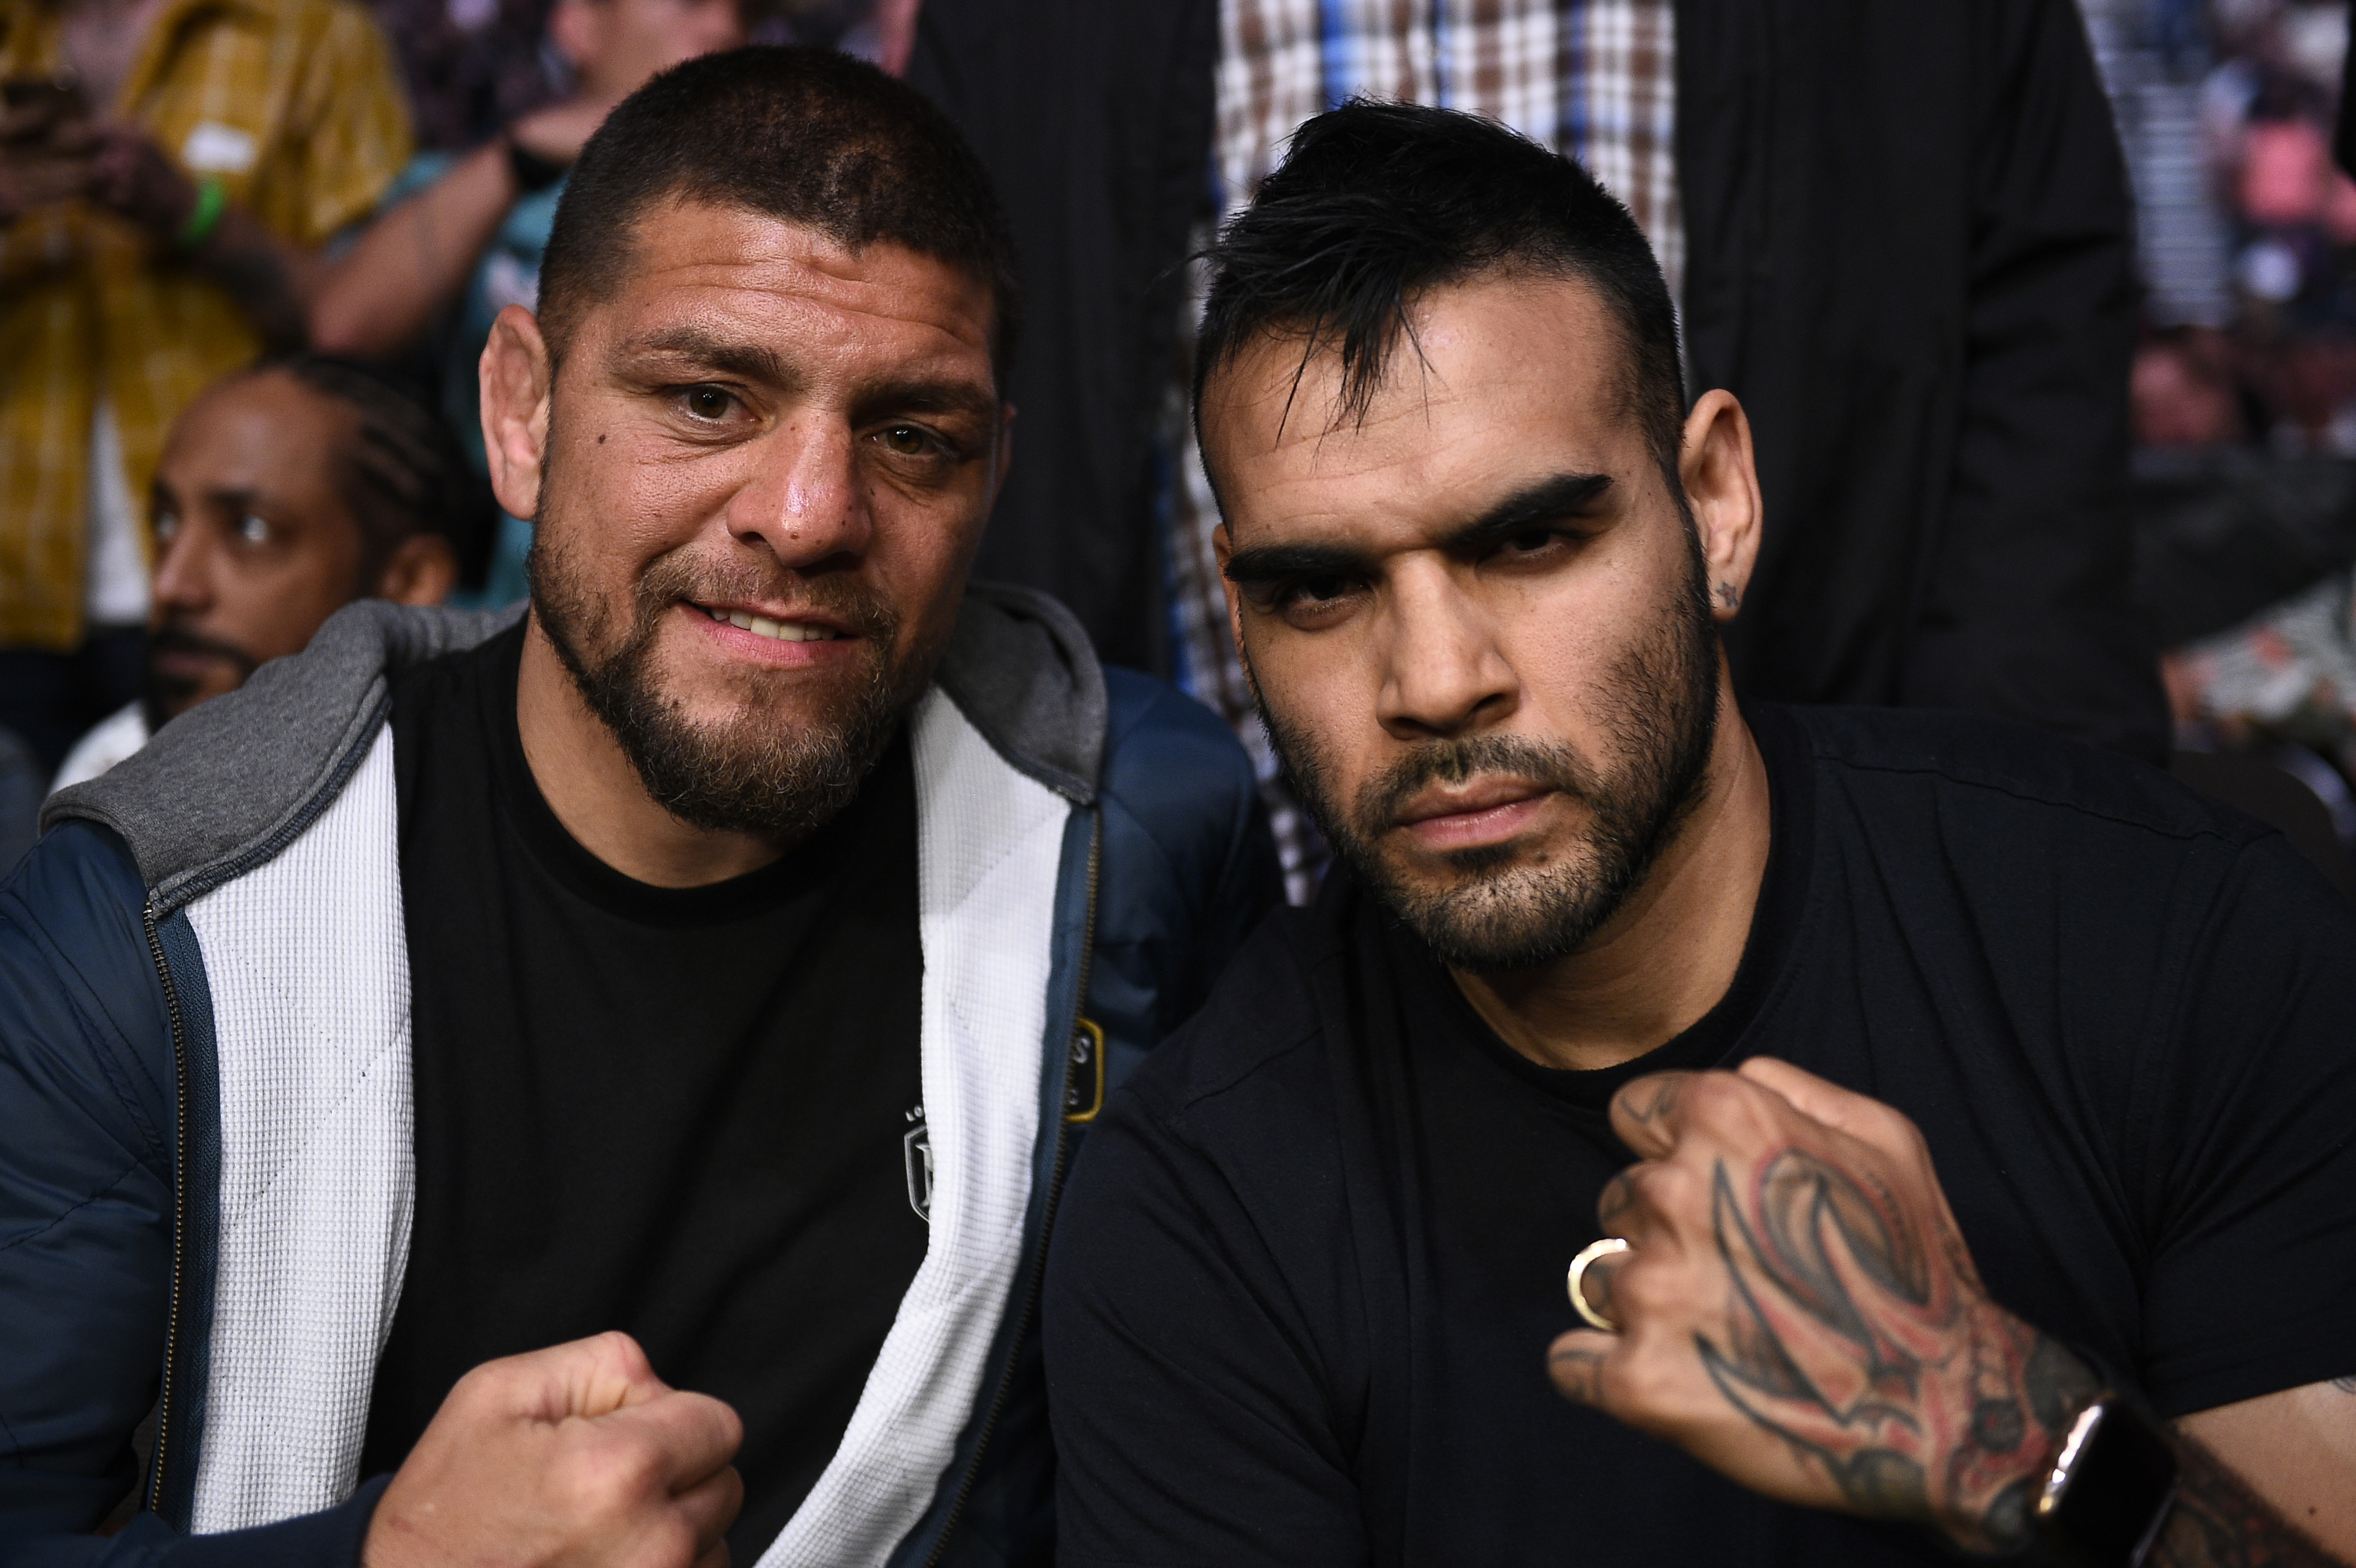 Nick Diaz (L) and guest Martin Sano are seen attending the UFC 261 event at VyStar Veterans Memorial Arena on April 24, 2021 in Jacksonville, Florida